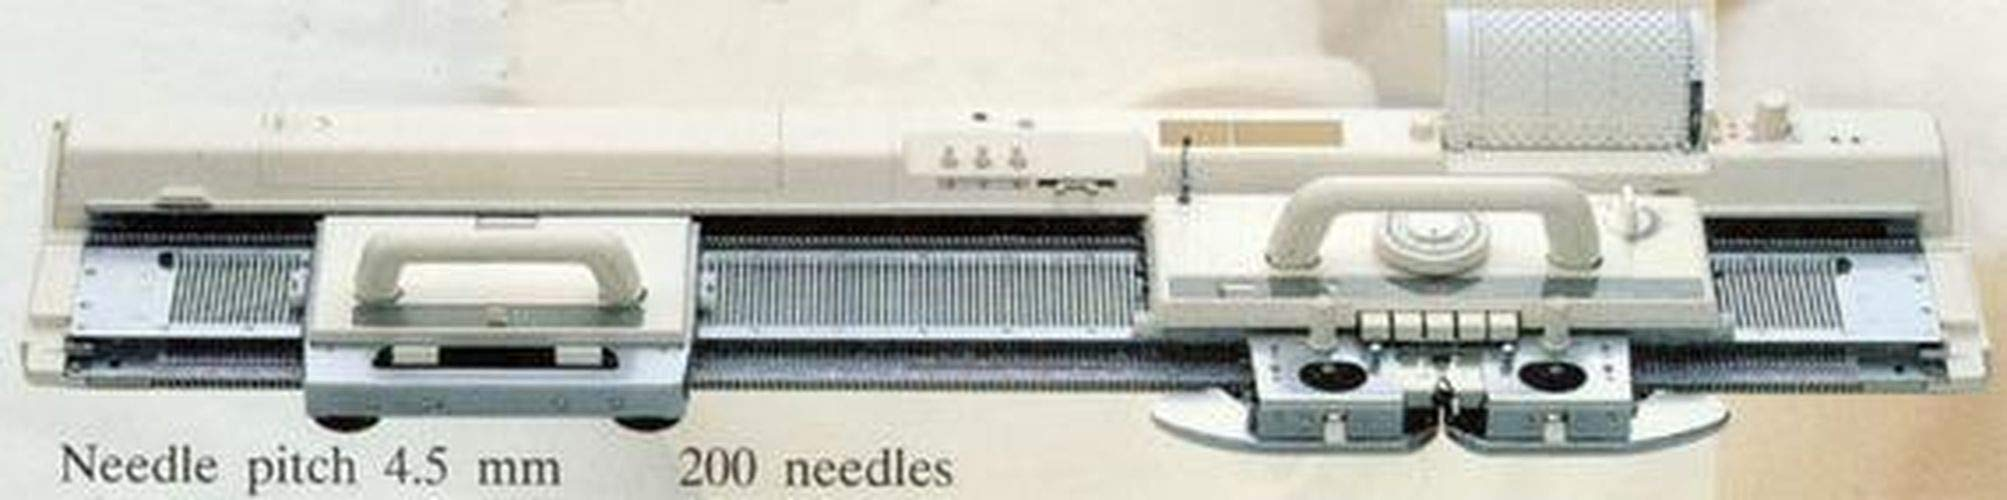 KH868 4.5mm (5.6 Gauge) Punch Card Knitting Machine Automatic Needle Selection Same as Bother KH868